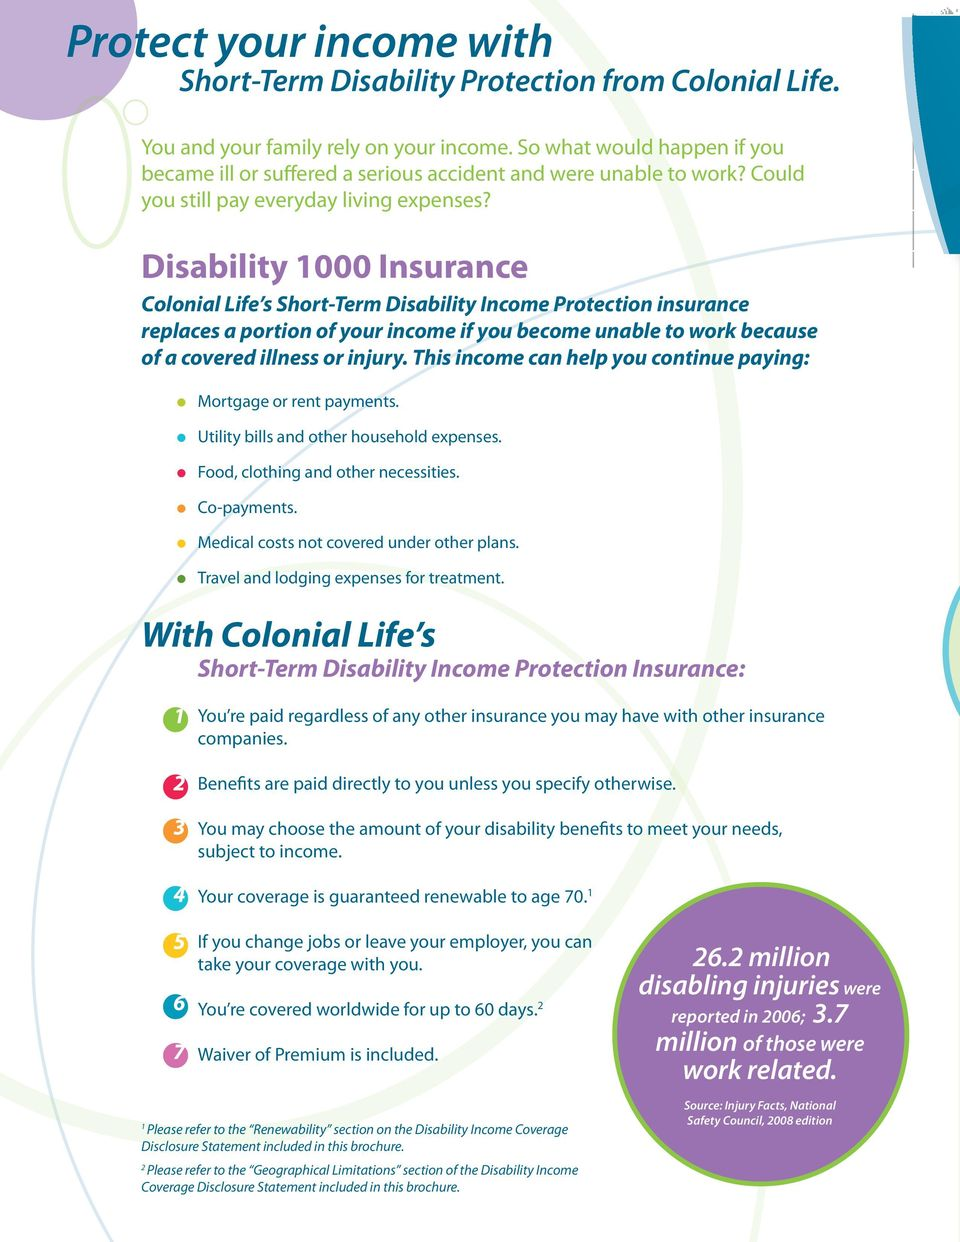 Disability 1000 Insurance Colonial Life s Short-Term Disability Income Protection insurance replaces a portion of your income if you become unable to work because of a covered illness or injury.